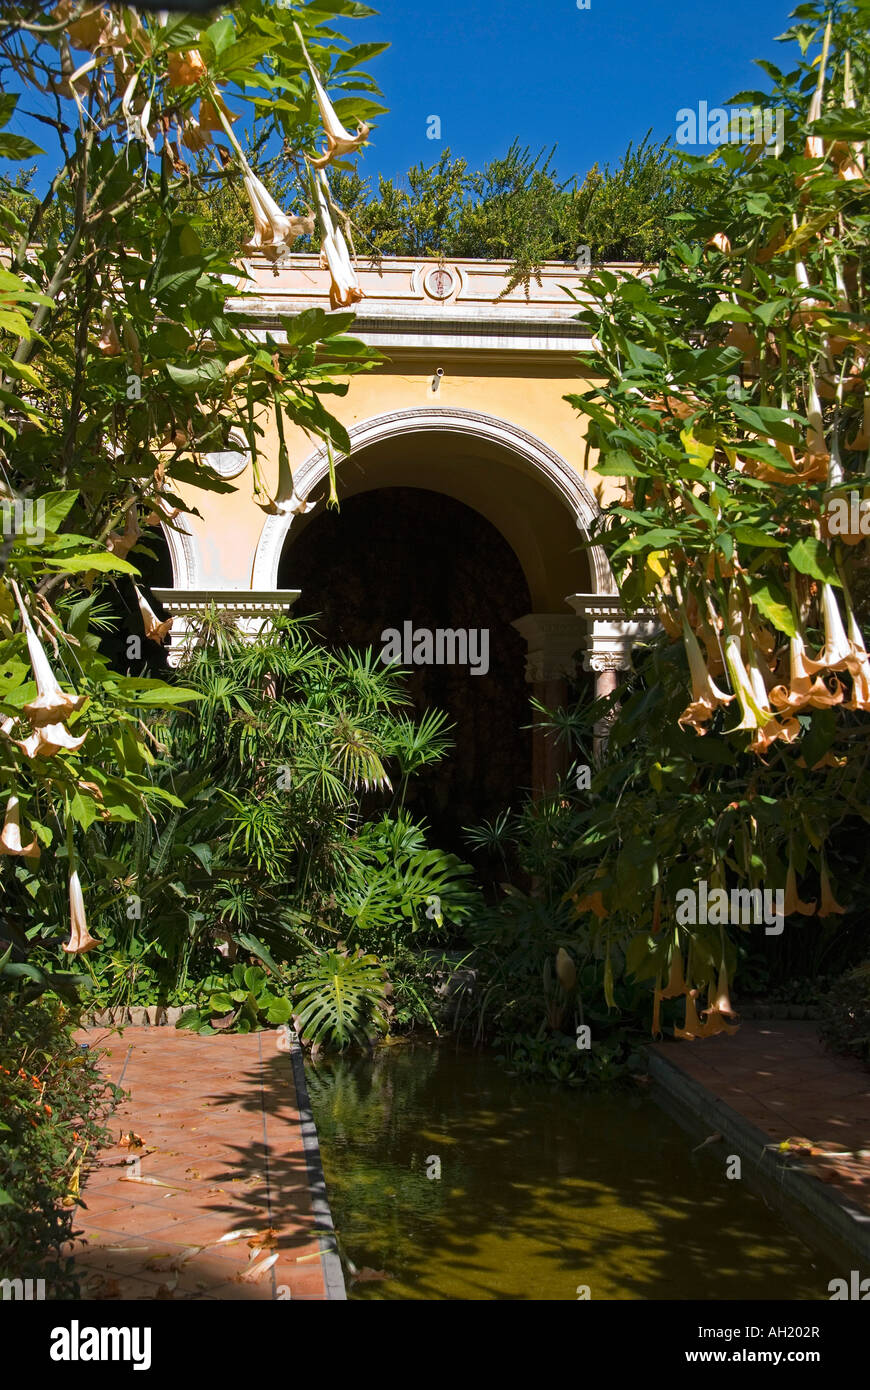 An arched feature in the gardens of the Villa Ephrussi de Rothschild, near Nice, on the Cote d'Azur, France - Stock Image